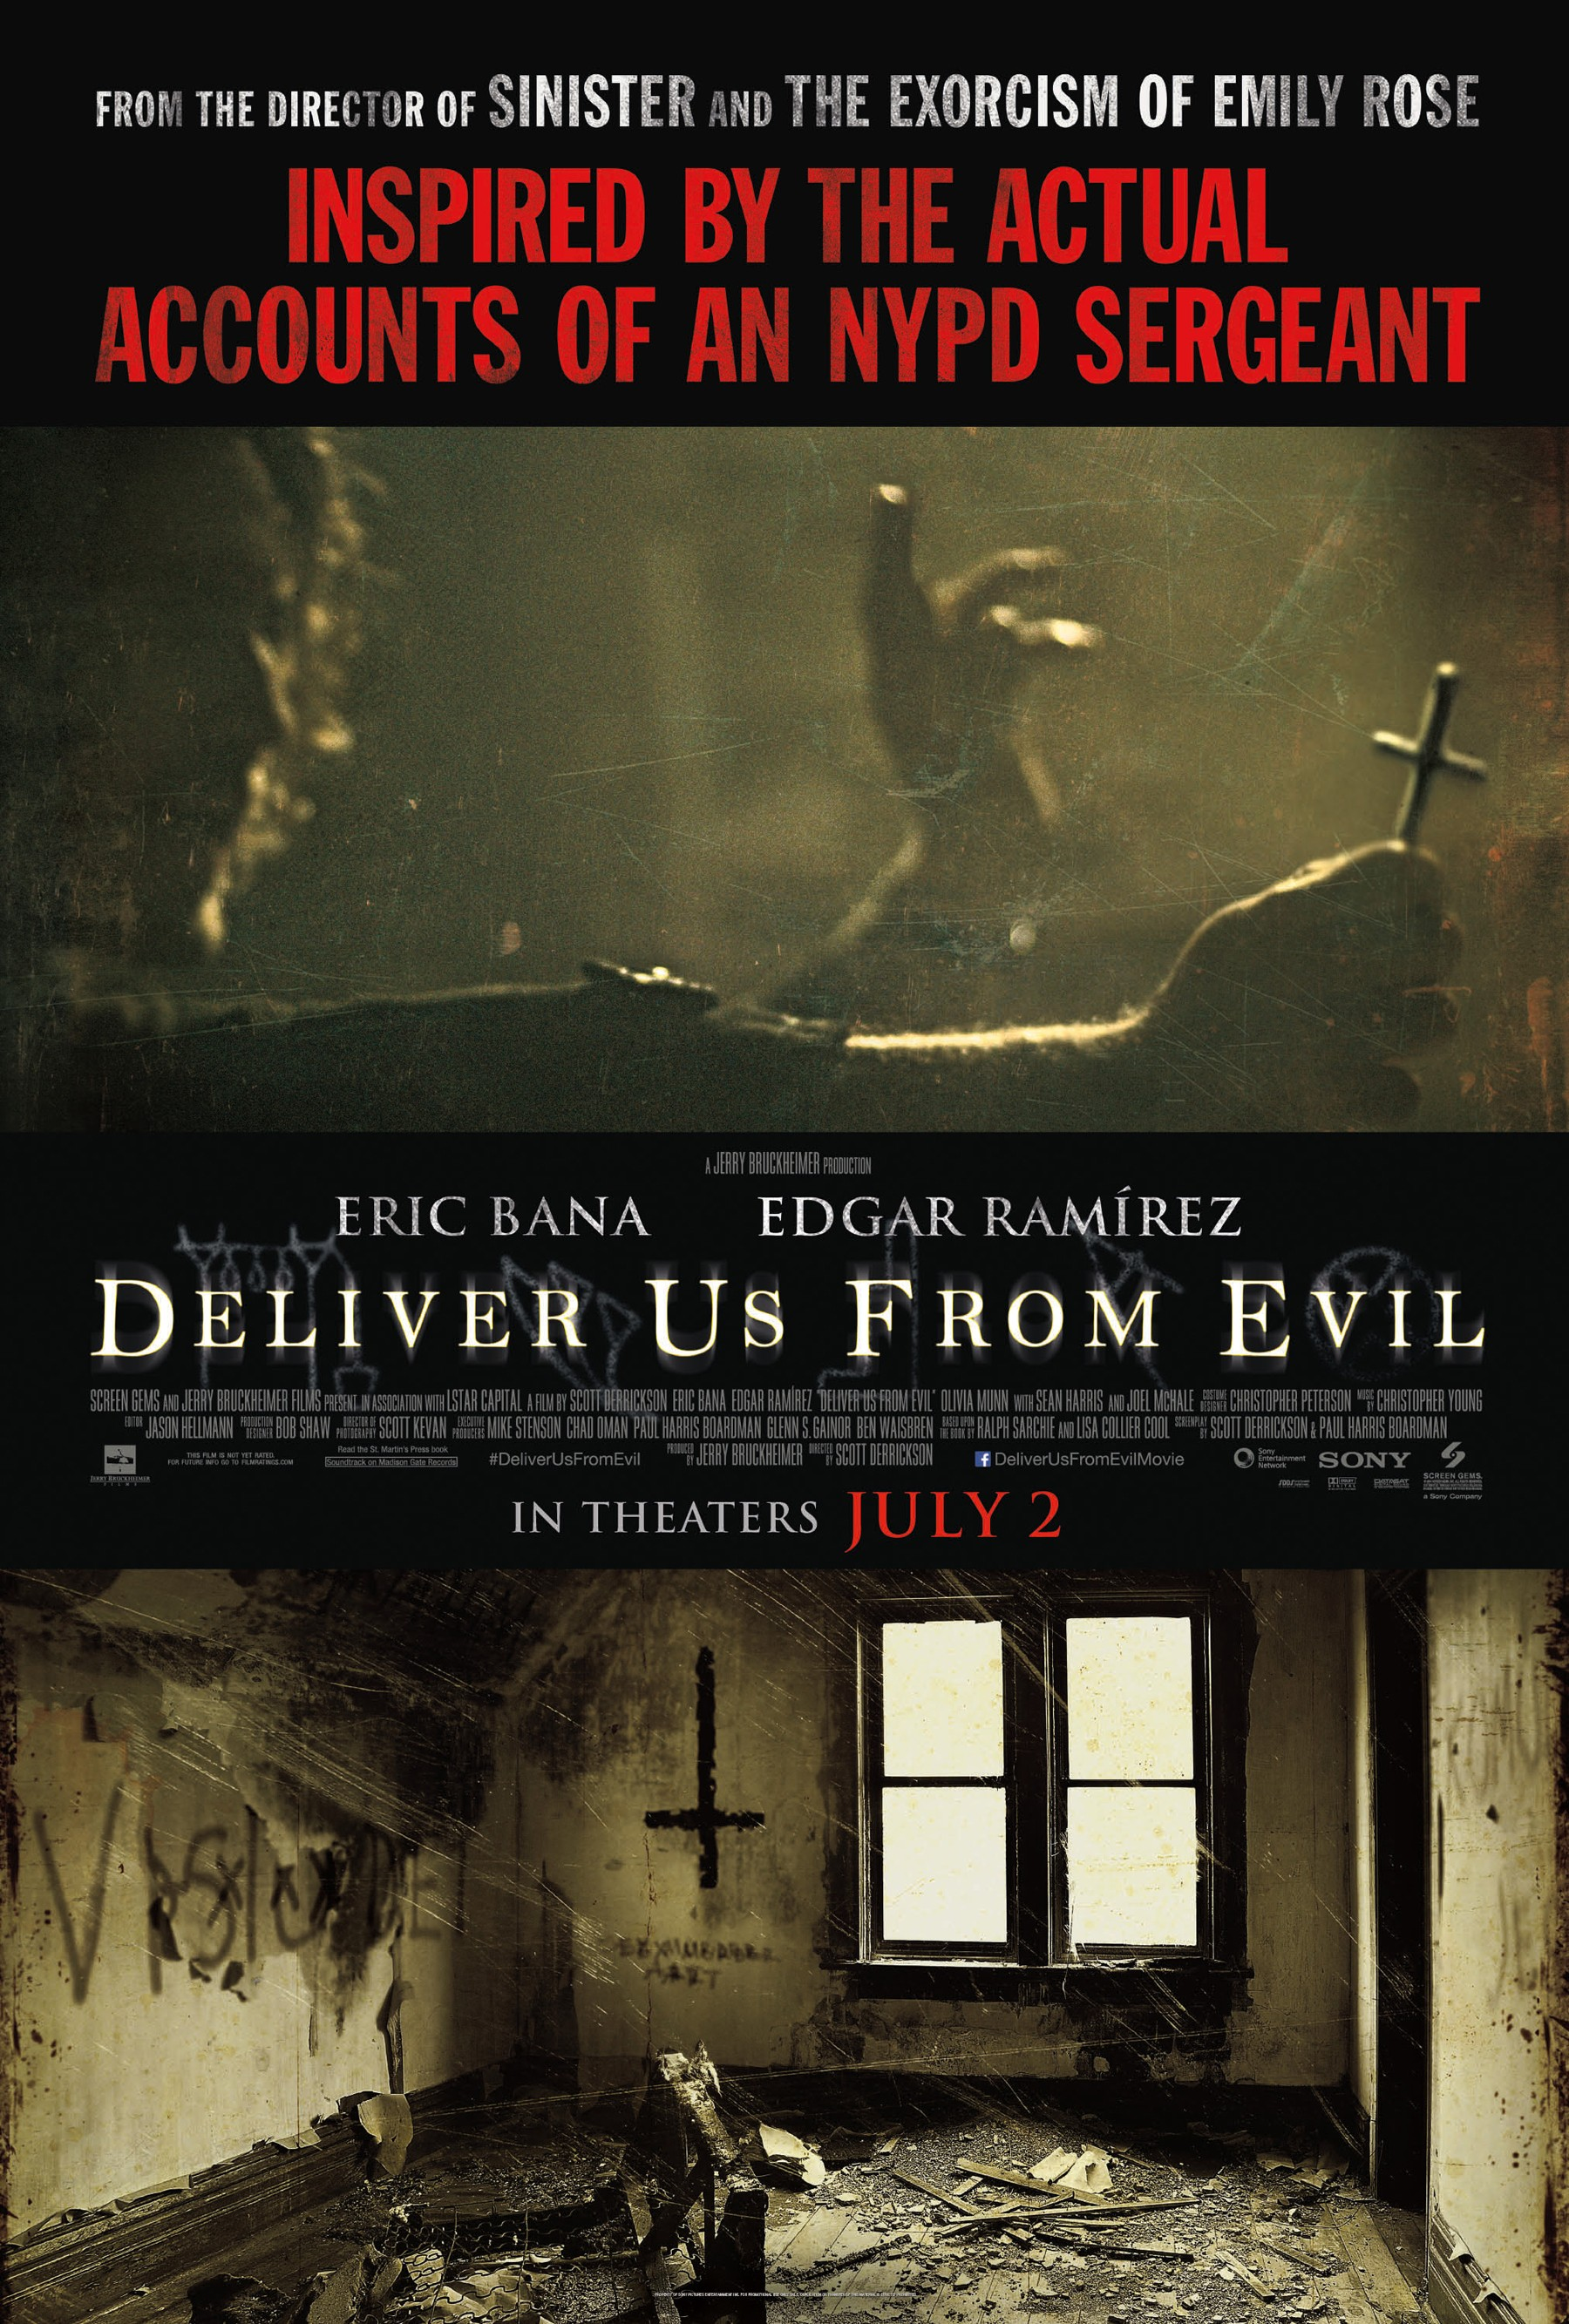 Deliver Us from Evil-Official Poster Banner PROMO XXLG-02JUNHO2014